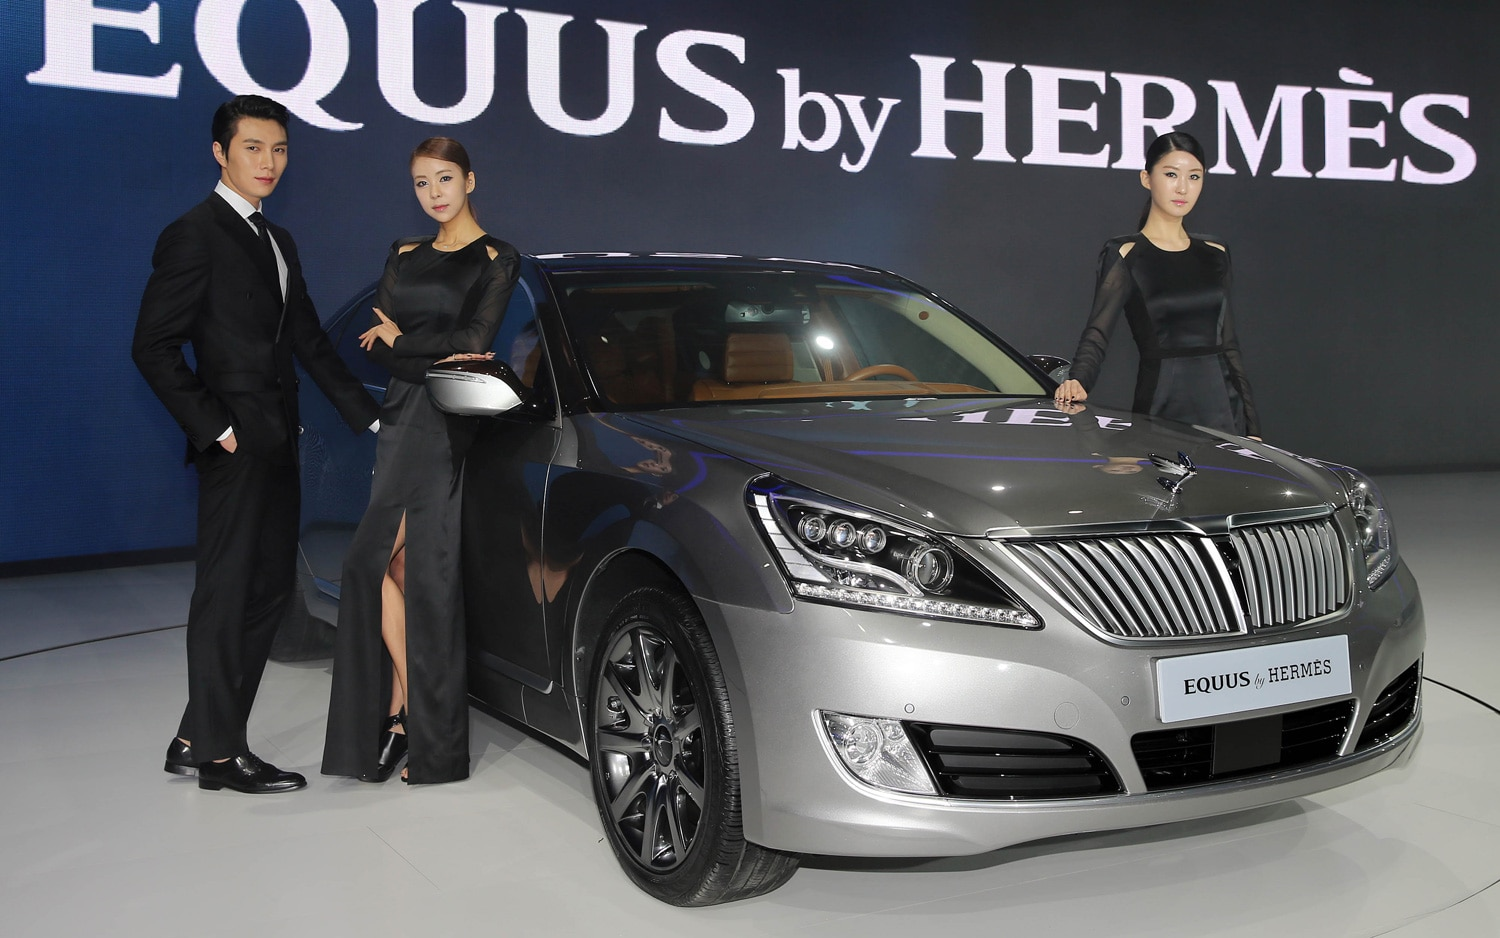 Hyundai Equus By Hermes Right Front 11